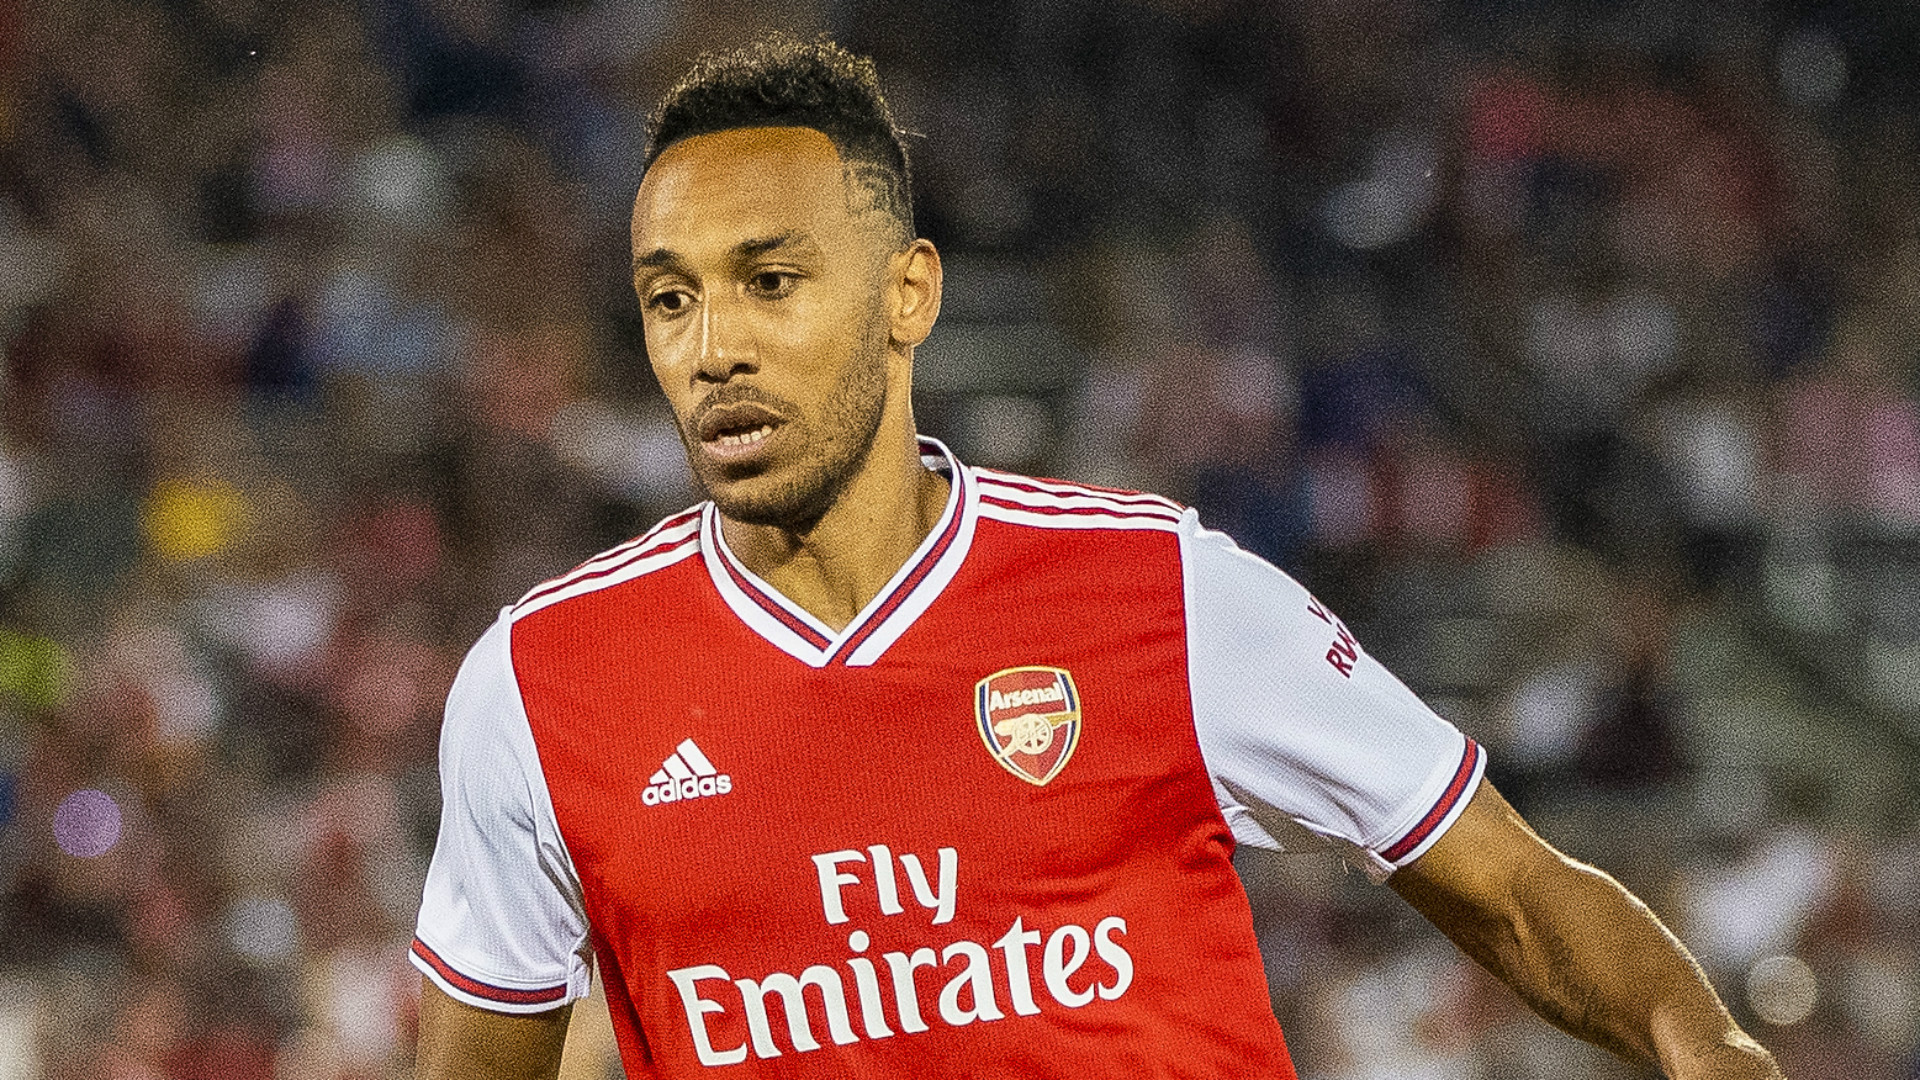 Video: Aubameyang replacable if he goes United - Lehmann